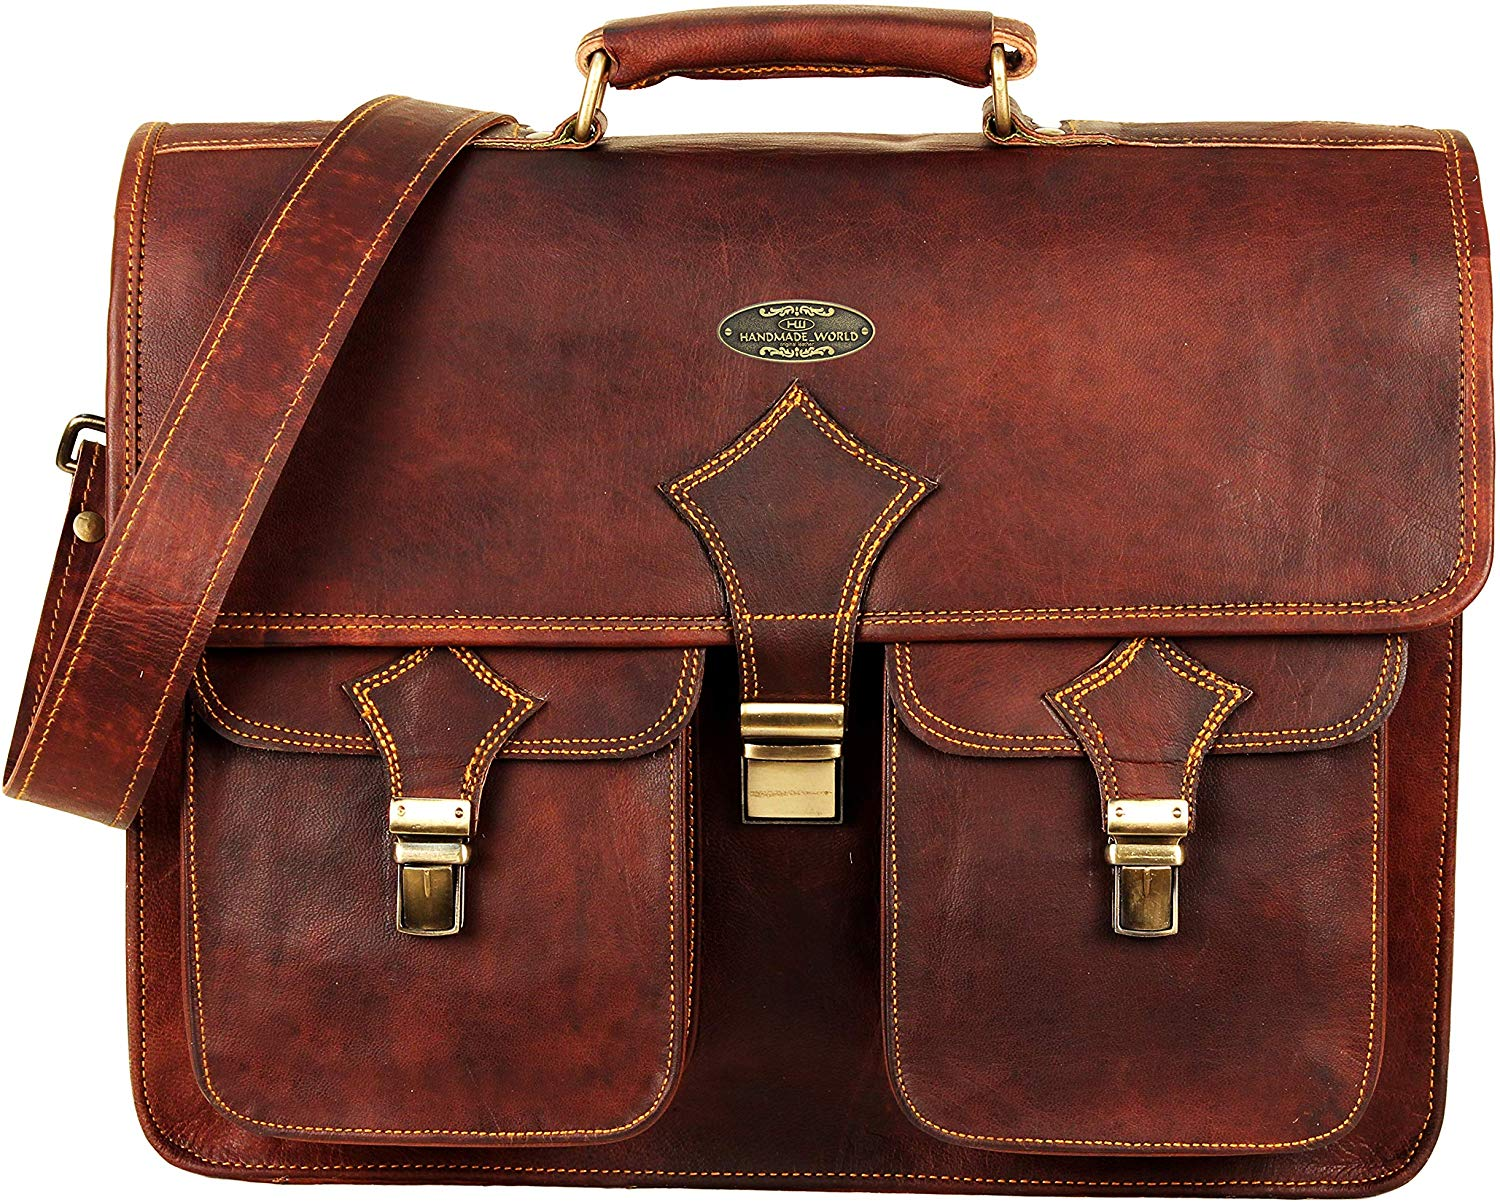 Full Grain Briefcase Bag with Top Handle and Push Clip